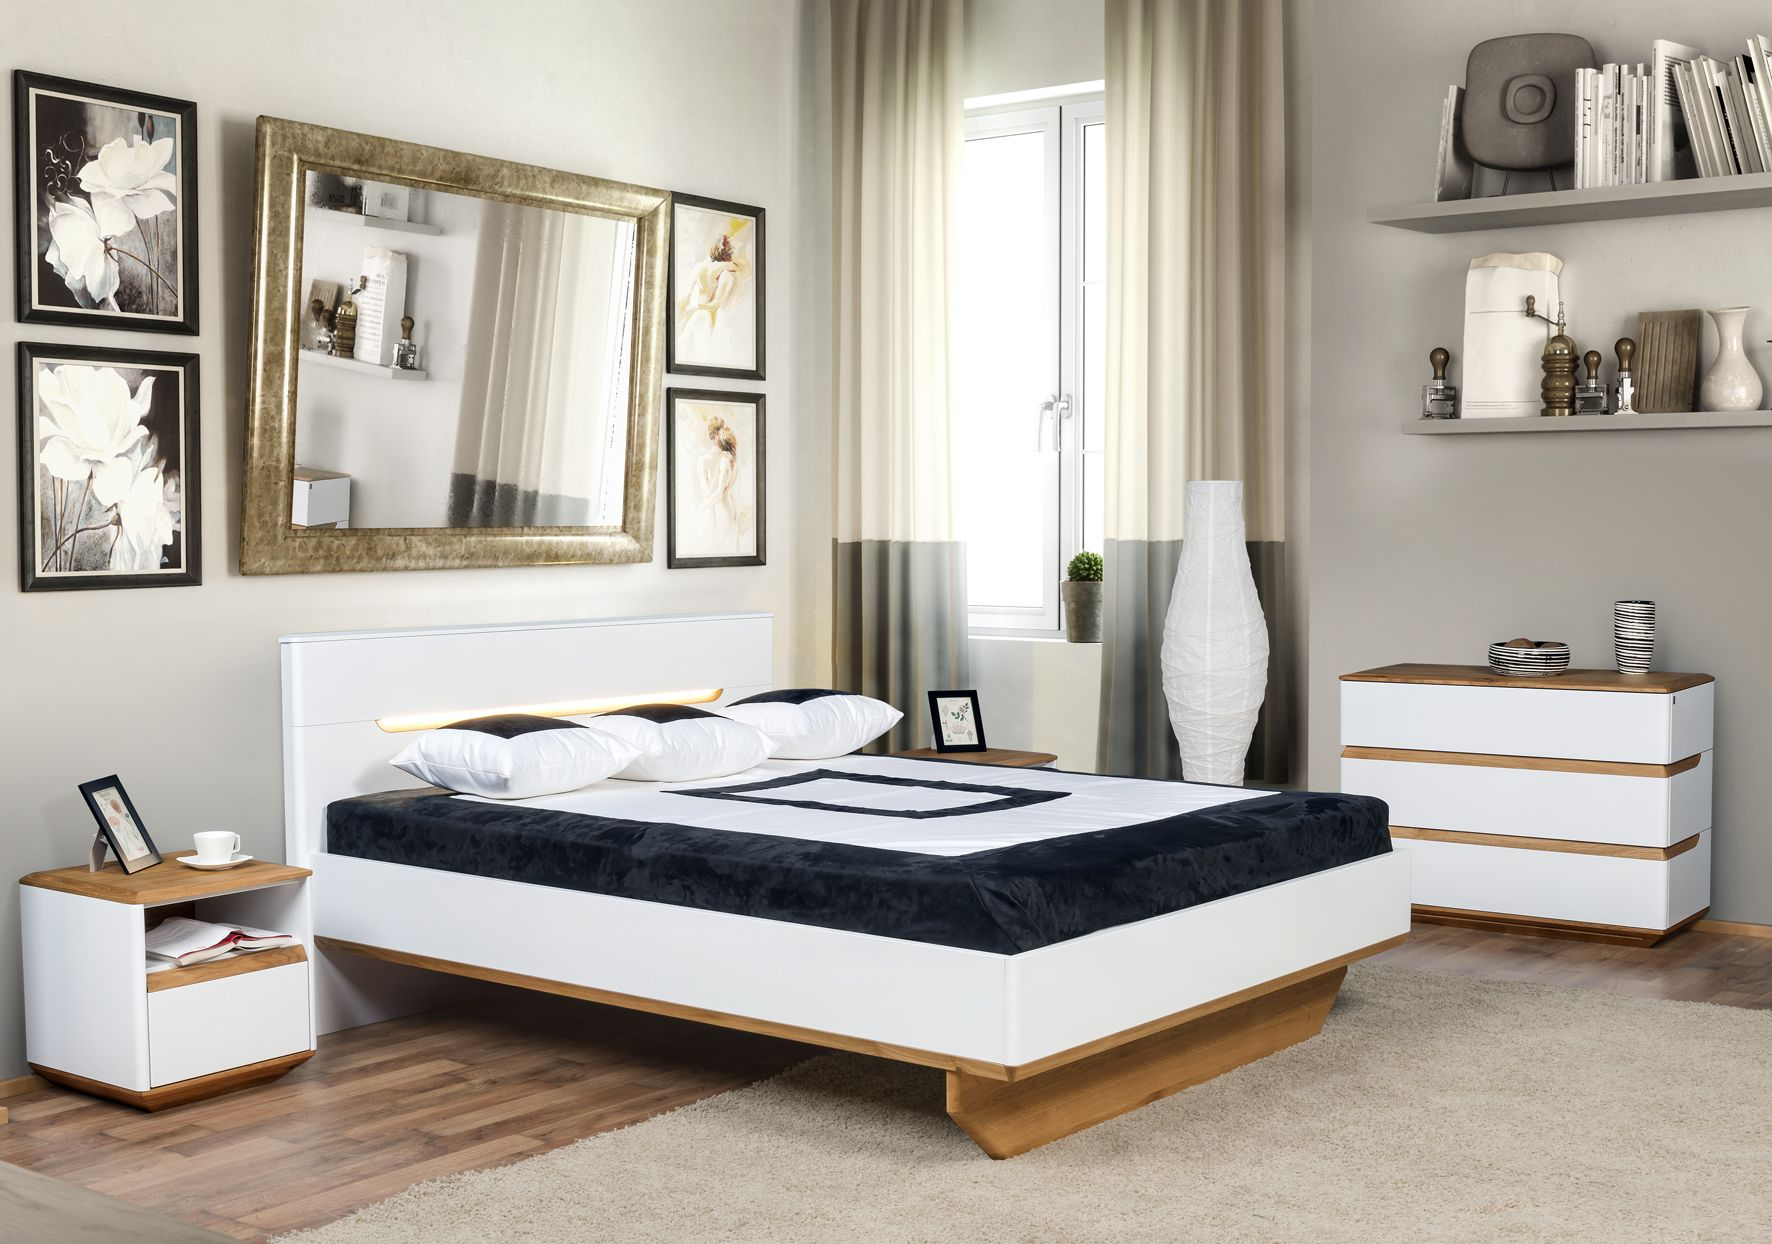 Calm And Light   Zebra Home Concept. Modern Bedroom Decor Idea From Klose. #